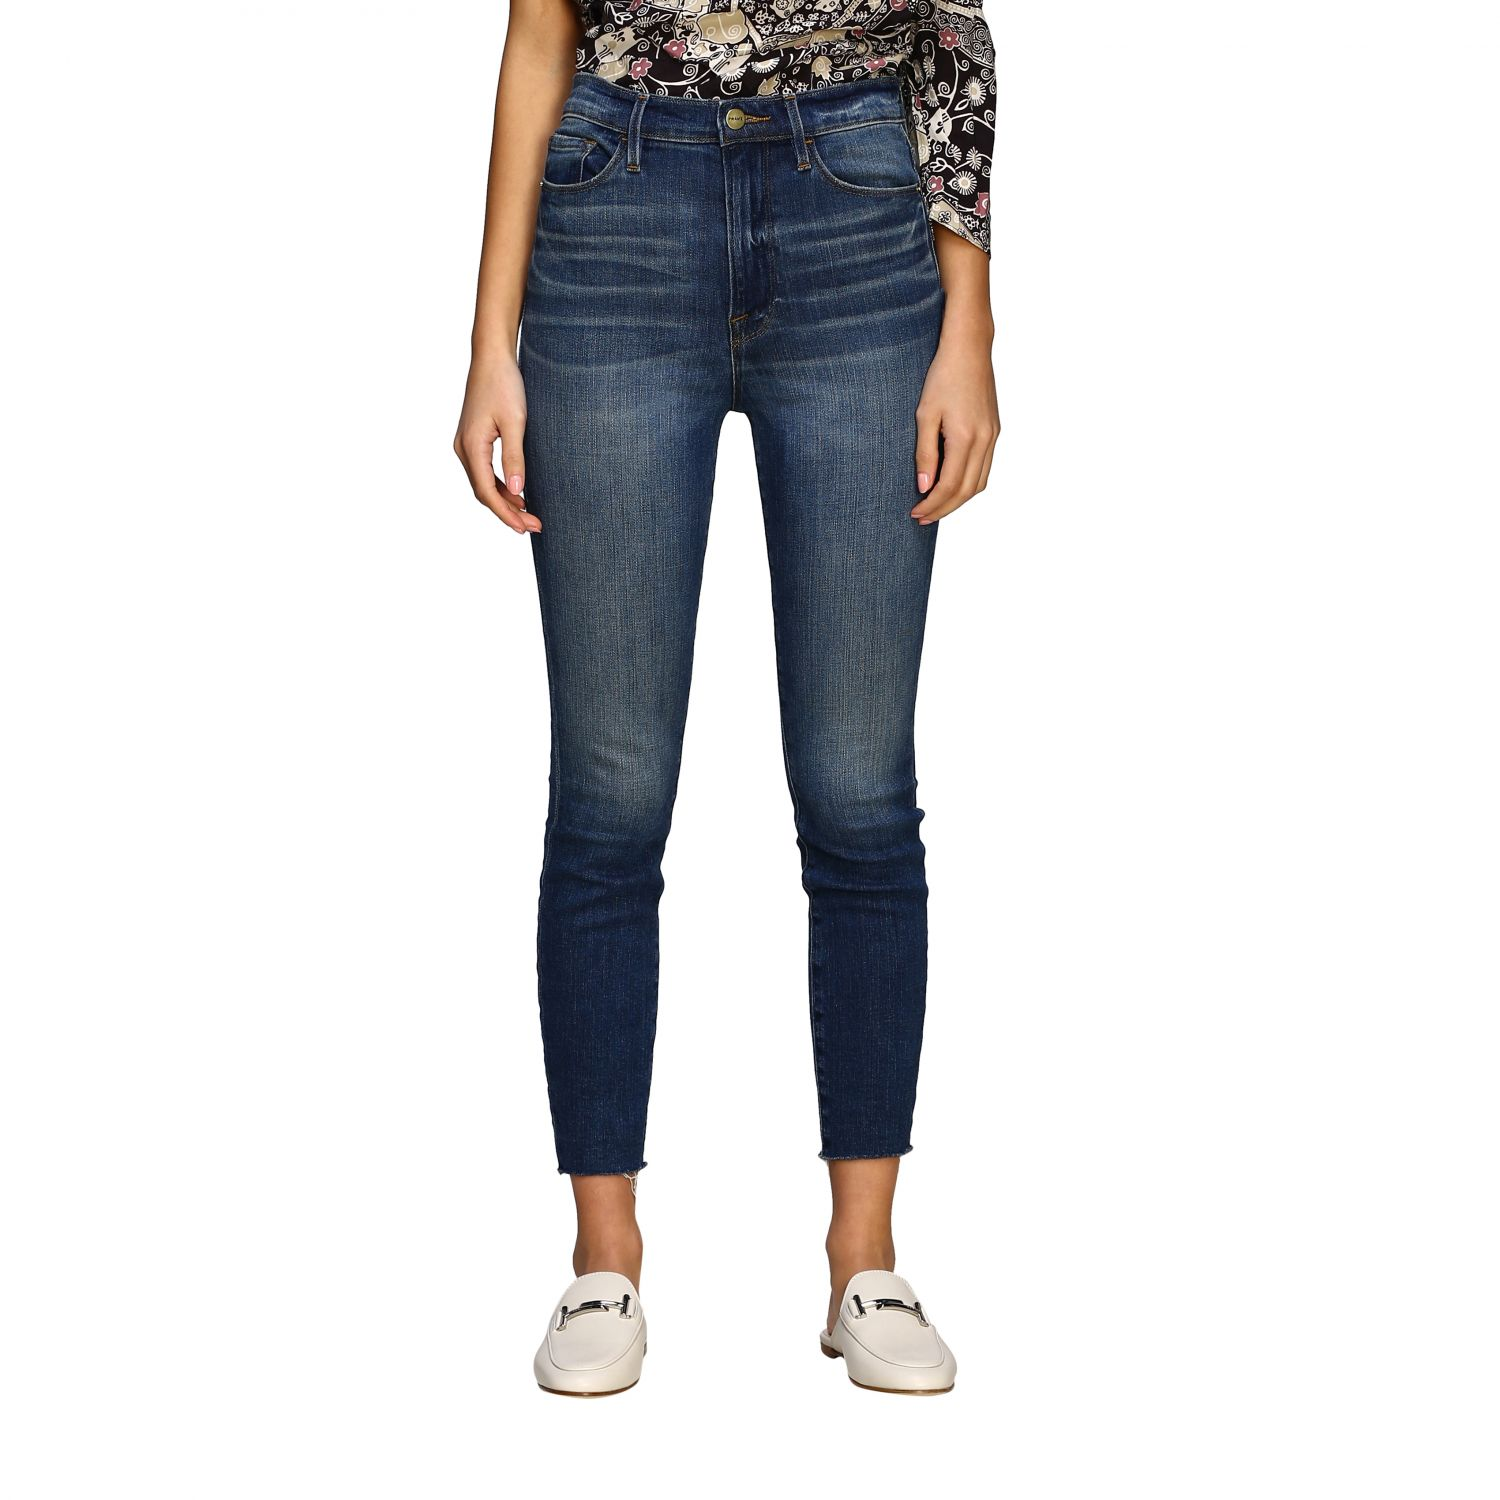 Jeans women Frame blue 1